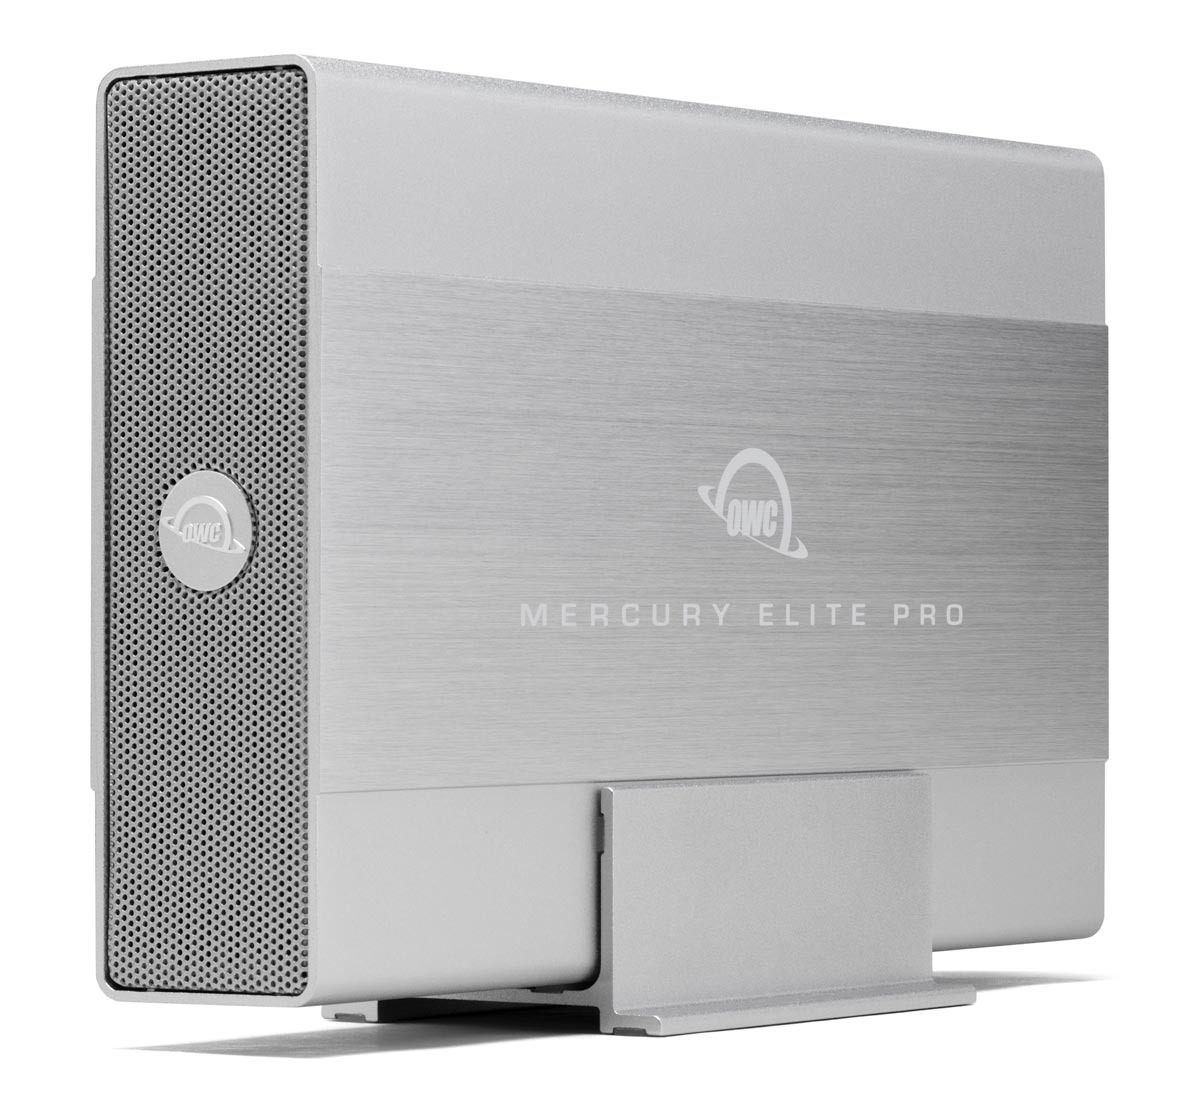 The OWC Mercury Elite Pro external storage system